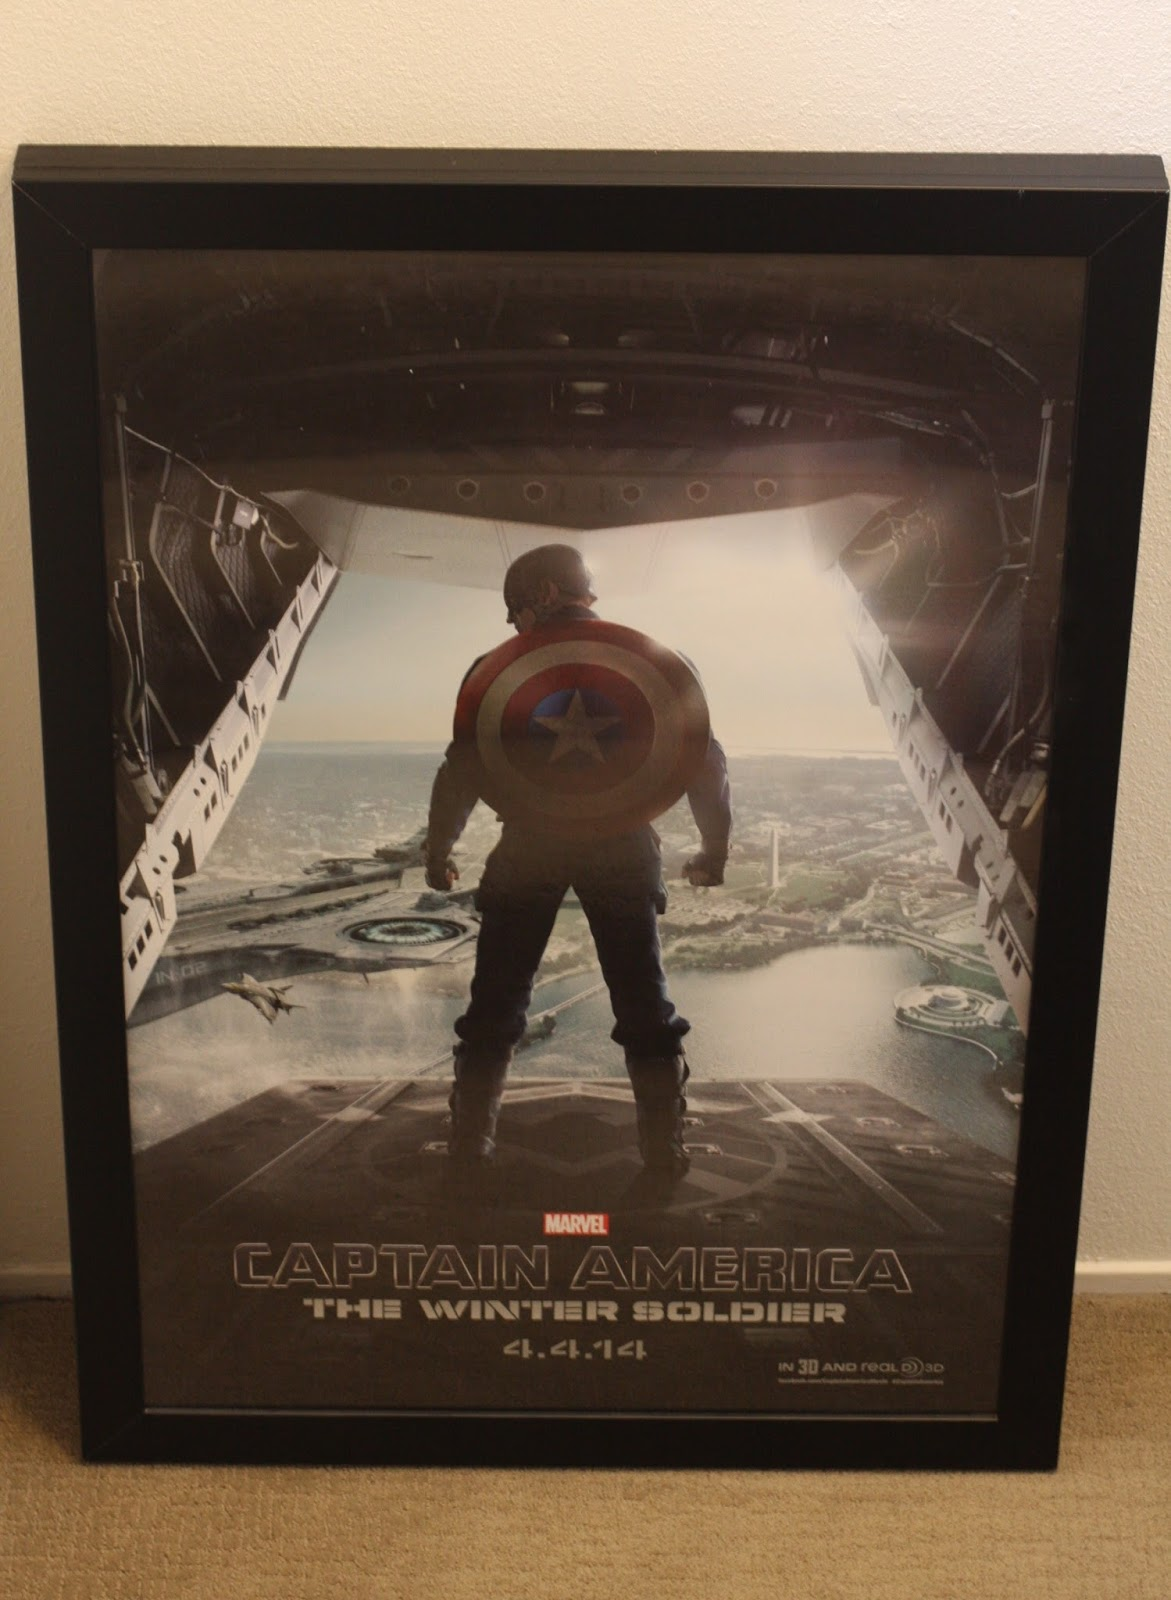 Geek diy bam movie poster light box diy part 2 outside frame acrylic sheet from 27 x 40 four piece rail frame and frosted white window film or 27 x 40 jeuxipadfo Gallery